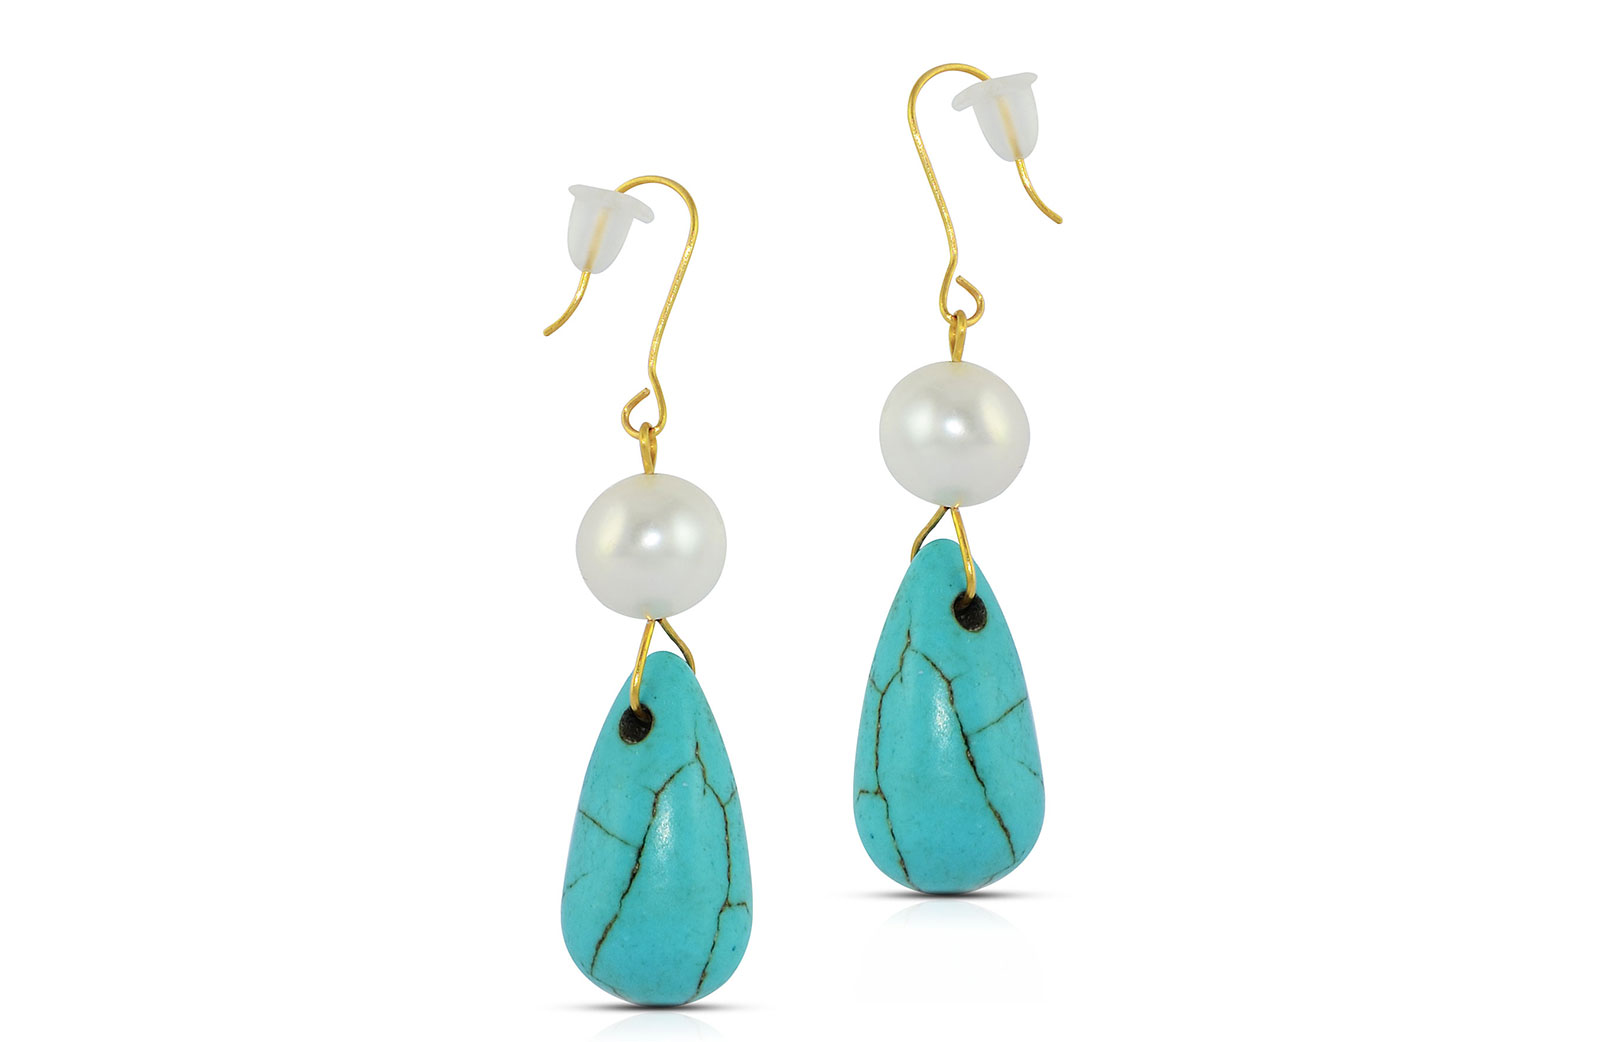 Vera Perla 10K Gold  Pearl and Turqoise Delicate Earrings